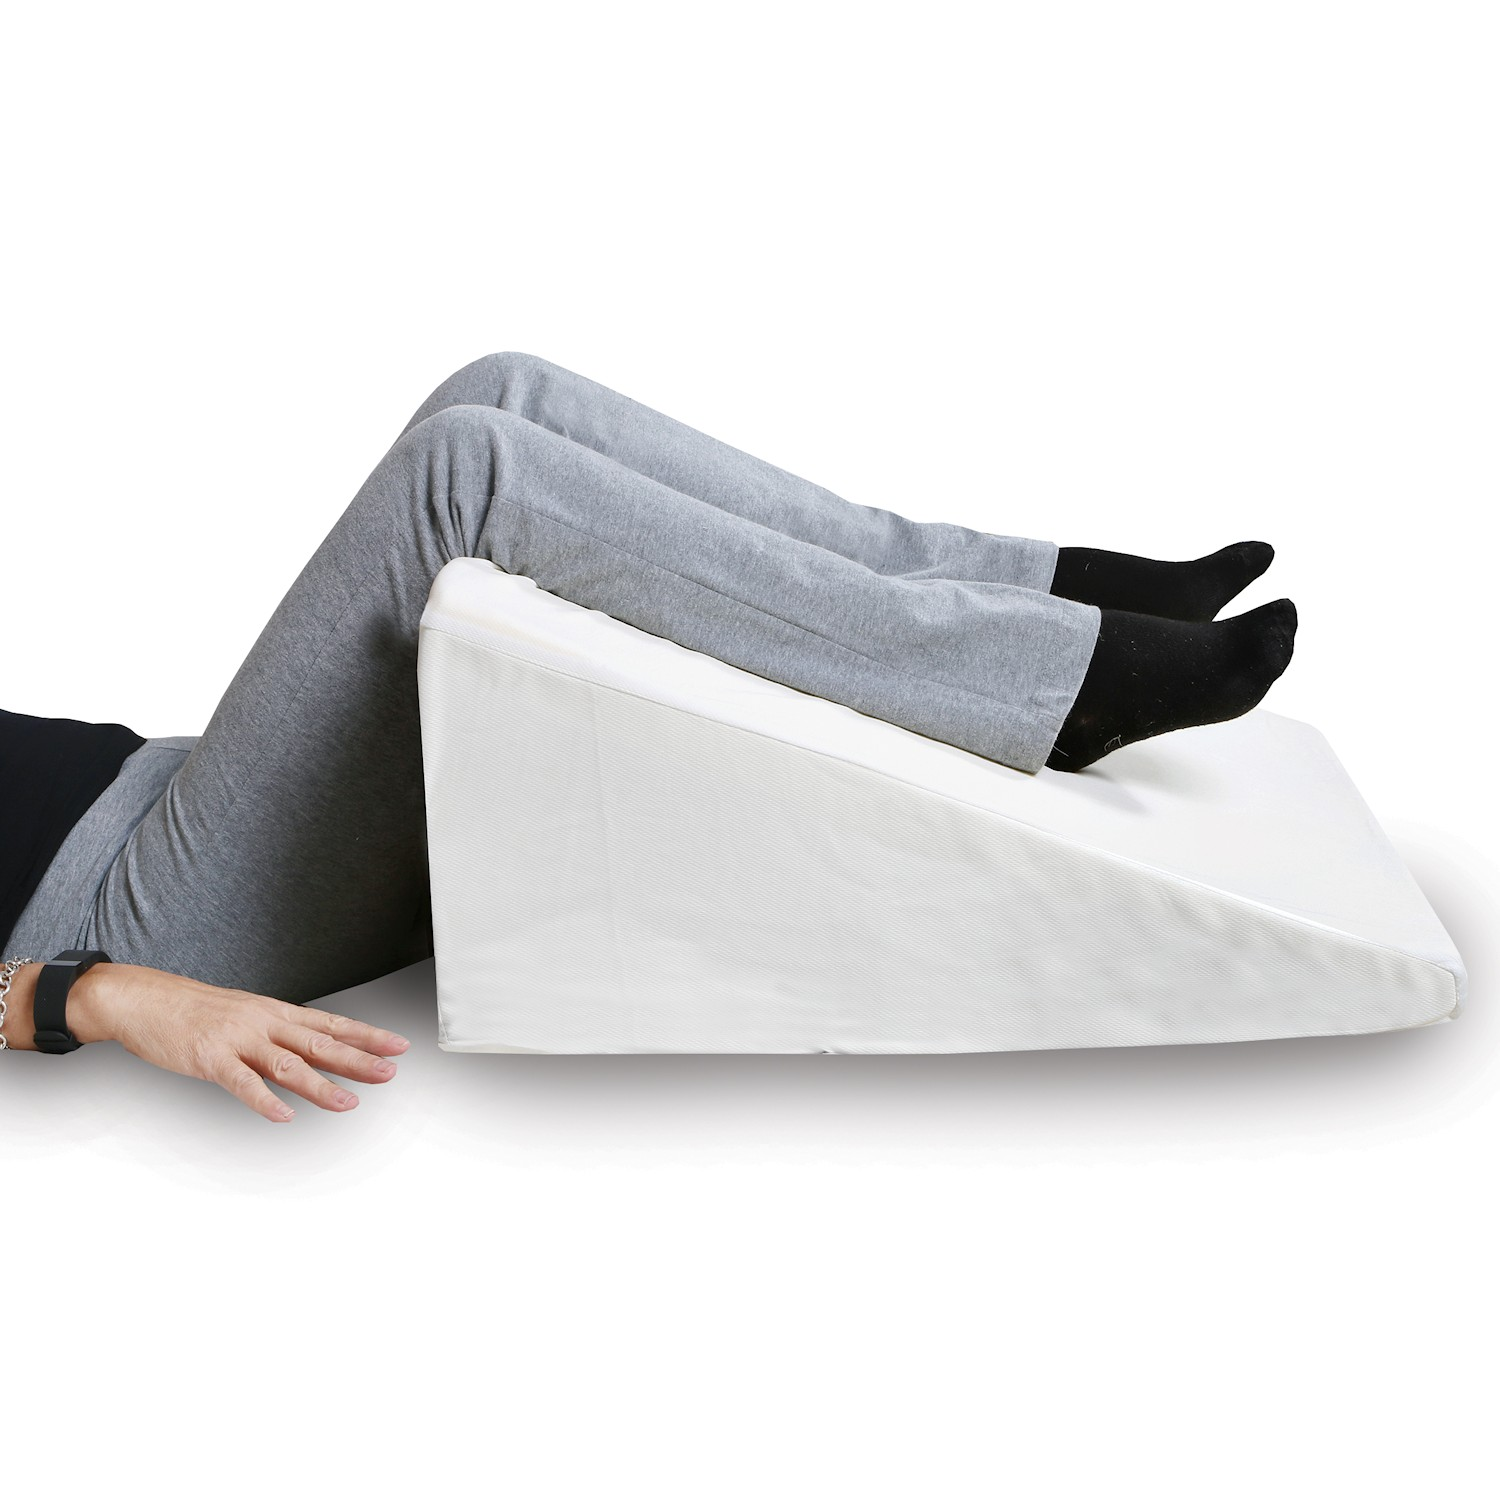 support plus bed wedge pillow premium hybrid memory foam triangle cushion to elevate upper body